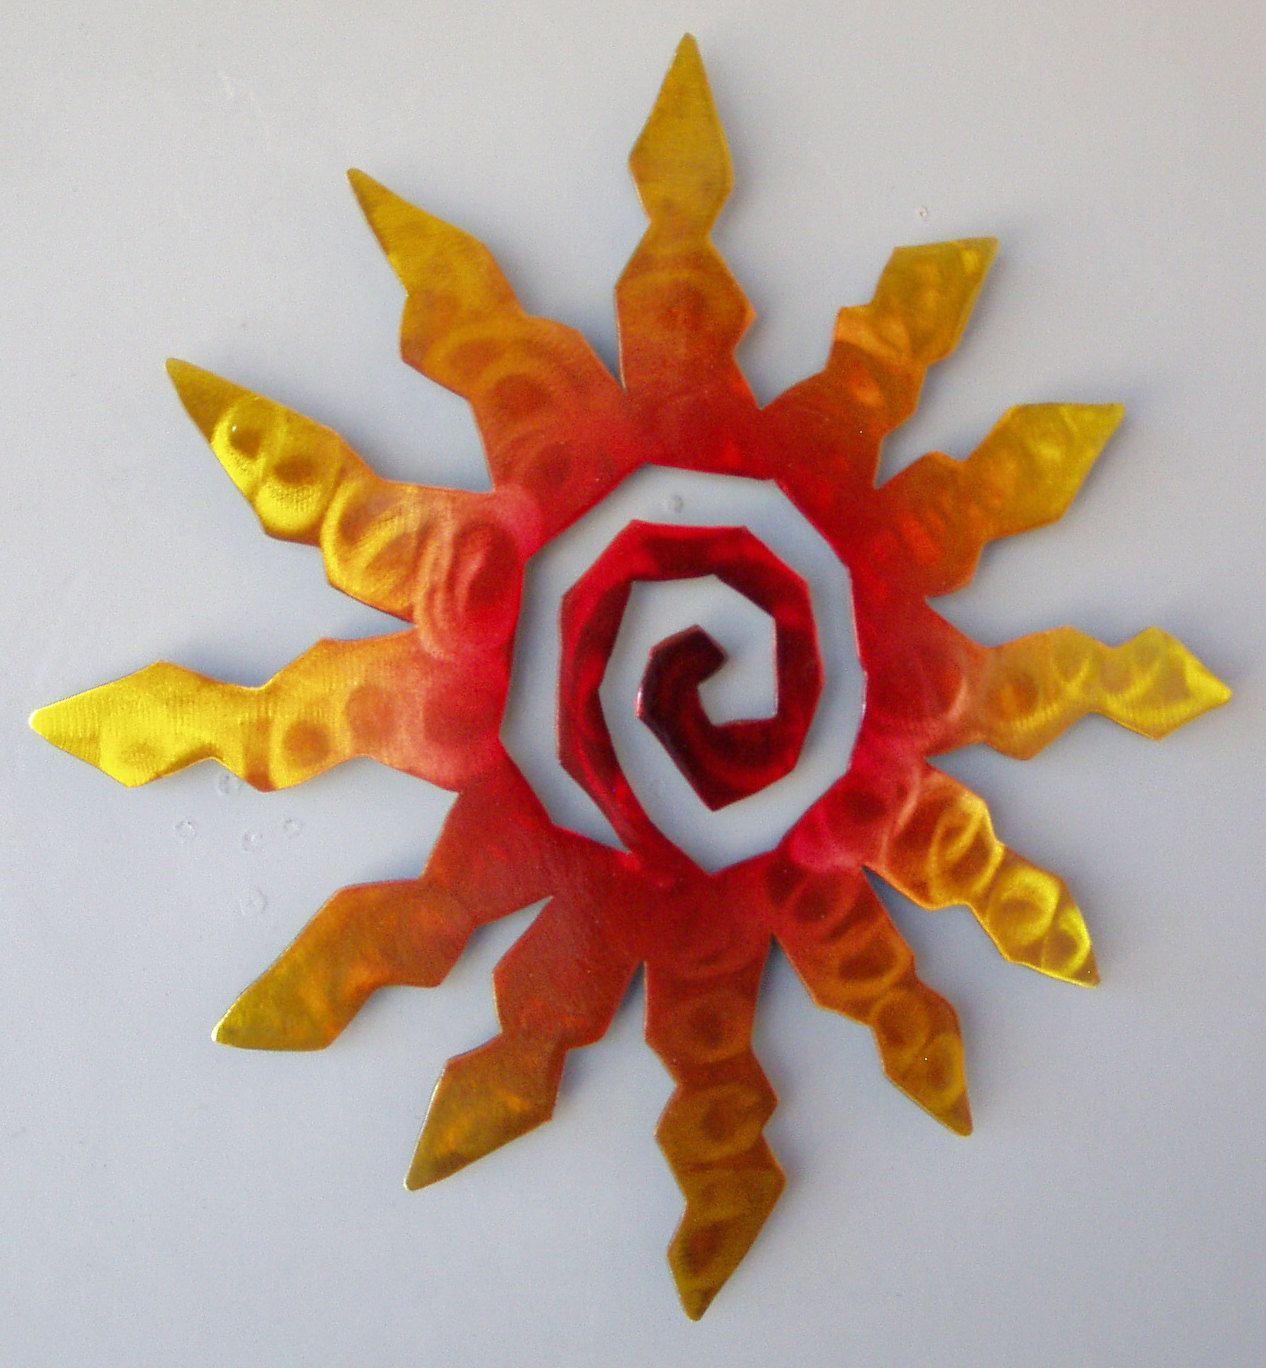 Sun burst spiral metal wall art sunset swirl finish with red